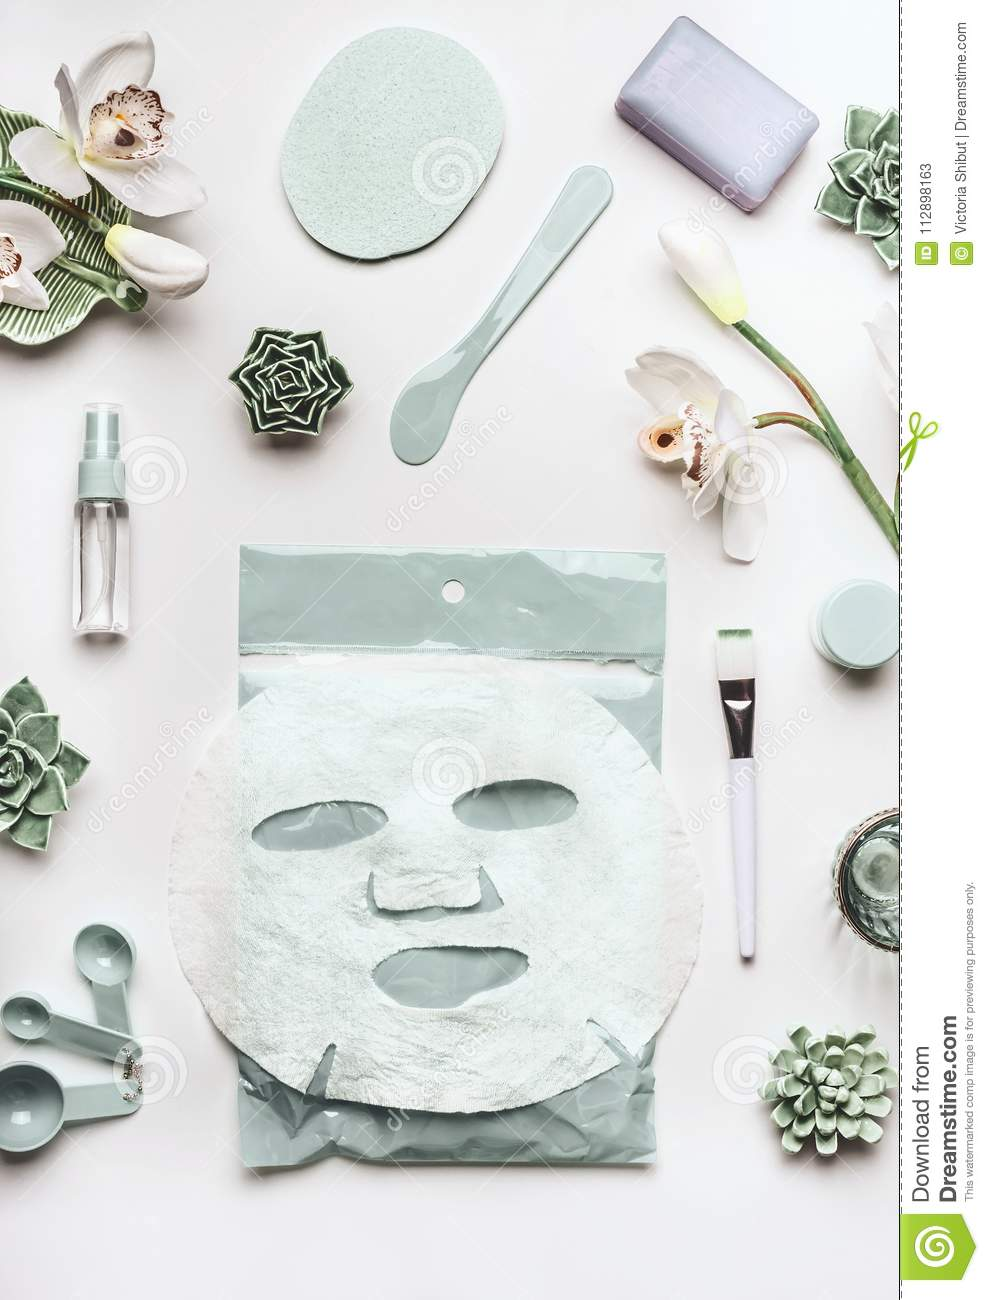 Skin Care Cosmetic Setting With Facial Sheet Mask Cleansing Products Succulents And Orchid Flowers On White Desktop Stock Image Image Of Measuring Herbal 112898163